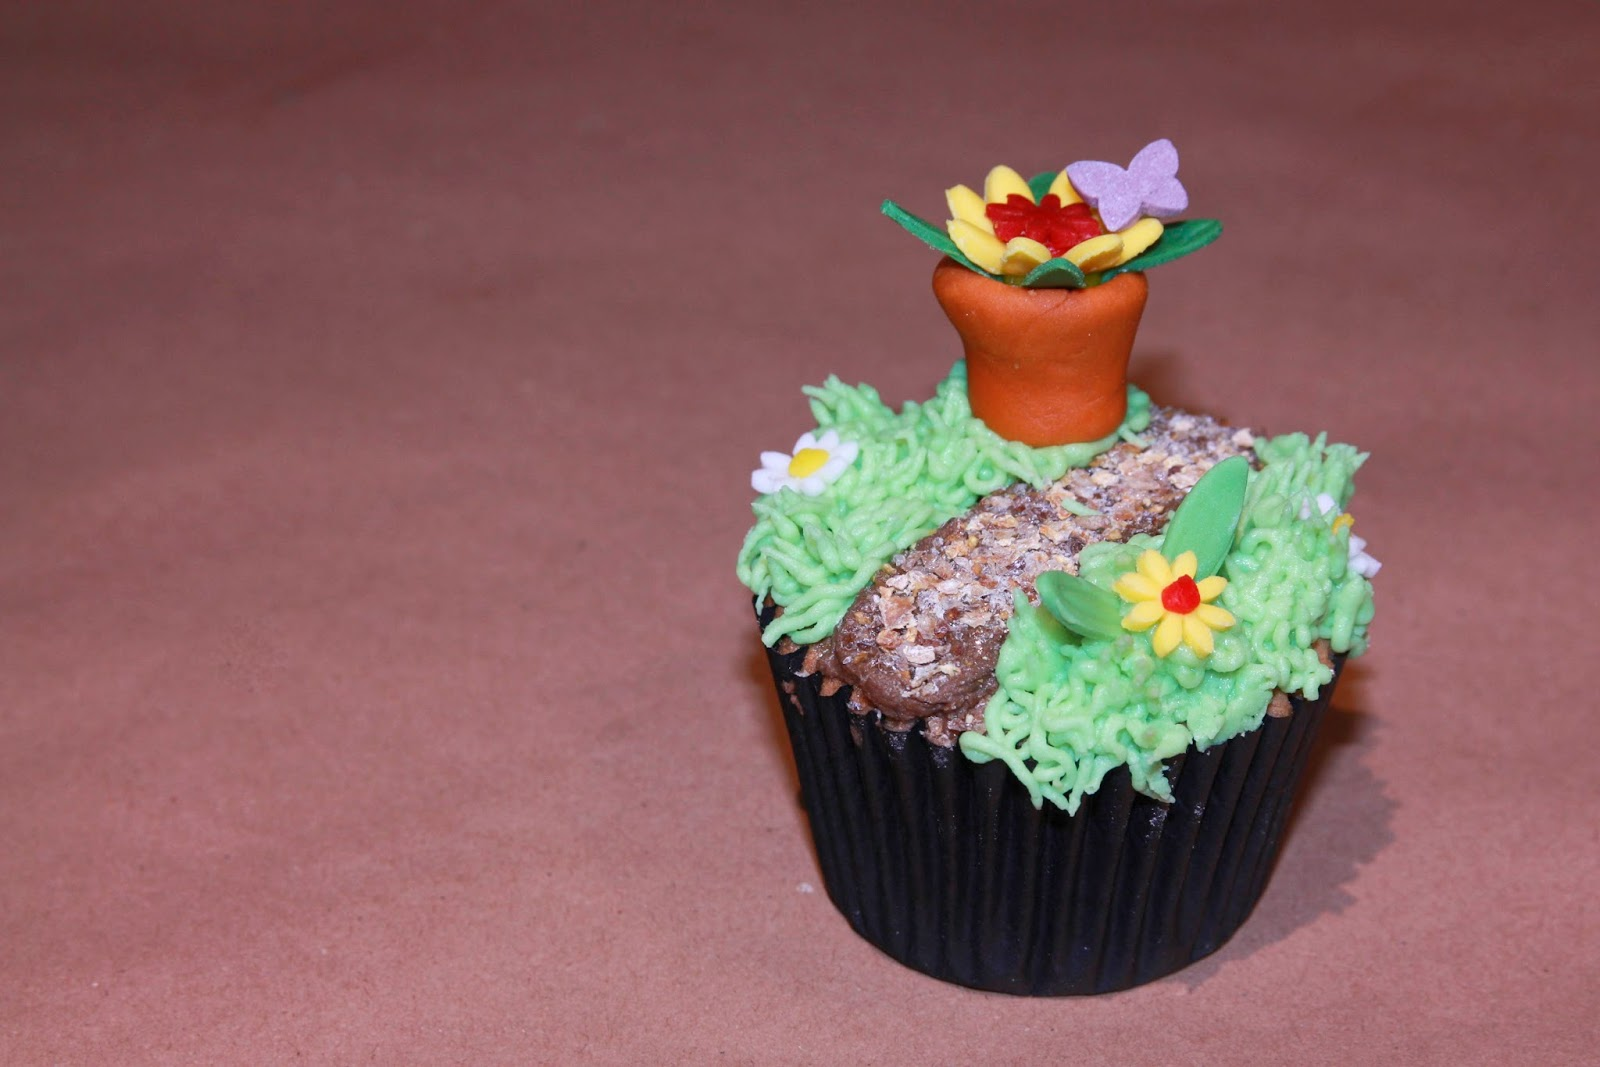 Earl Grey cupcake decorated with a garden path and flower pot